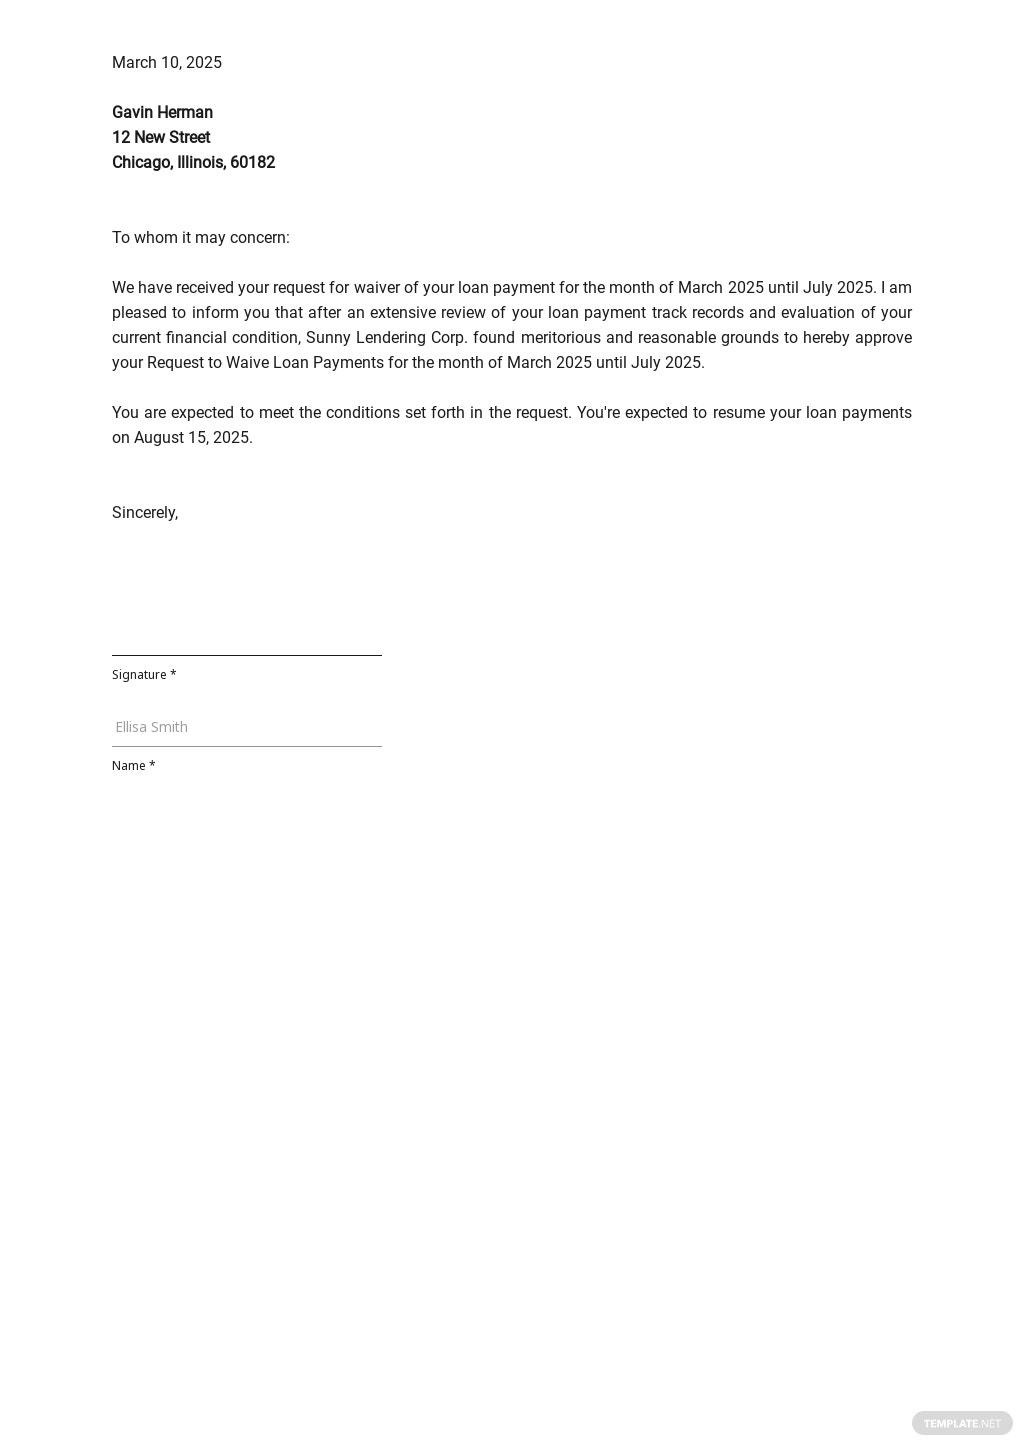 Waiver Approval Letter Template.jpe